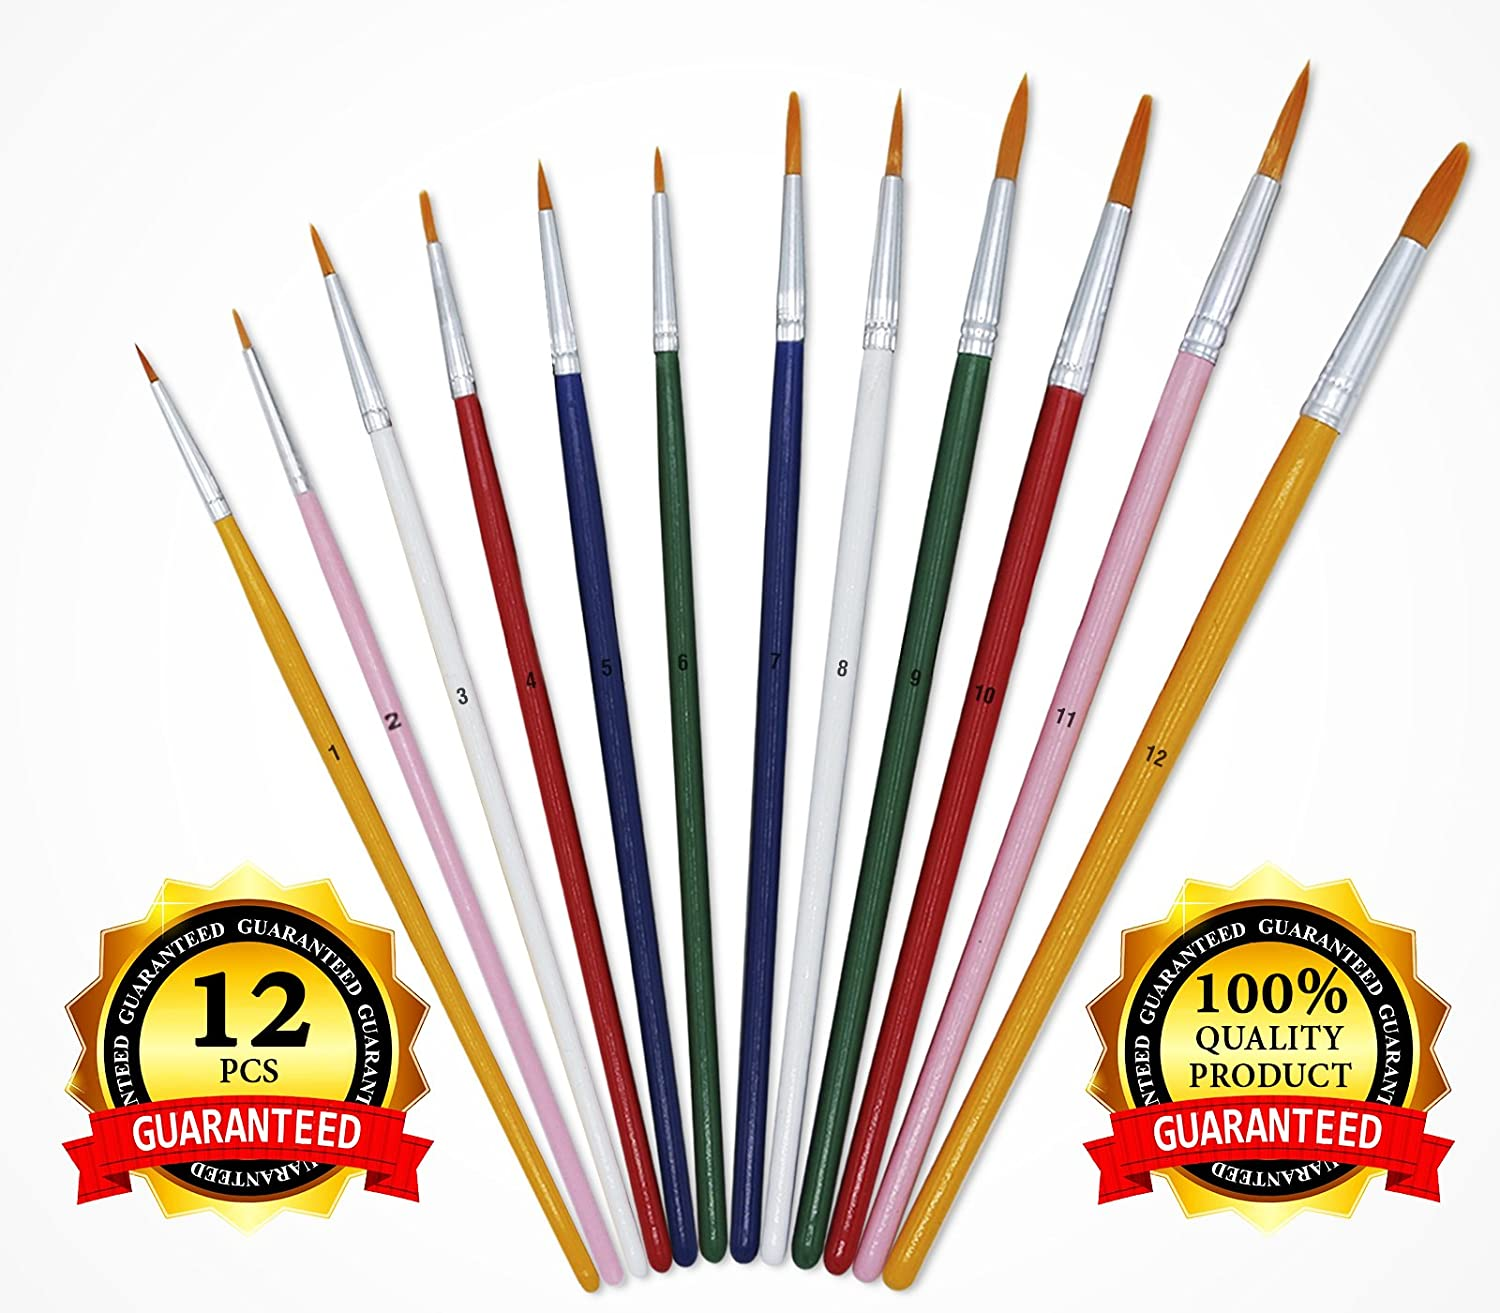 12 pcs Artist Paint Brushes Set, Paint Brush Set Round Painting Tip Nylon Hair, Art Painting, Face, Models - Artist Brushes for Acrylic Watercolor Oil Painting - Great for Artists, Kids and Students USABestSolution 4336963126